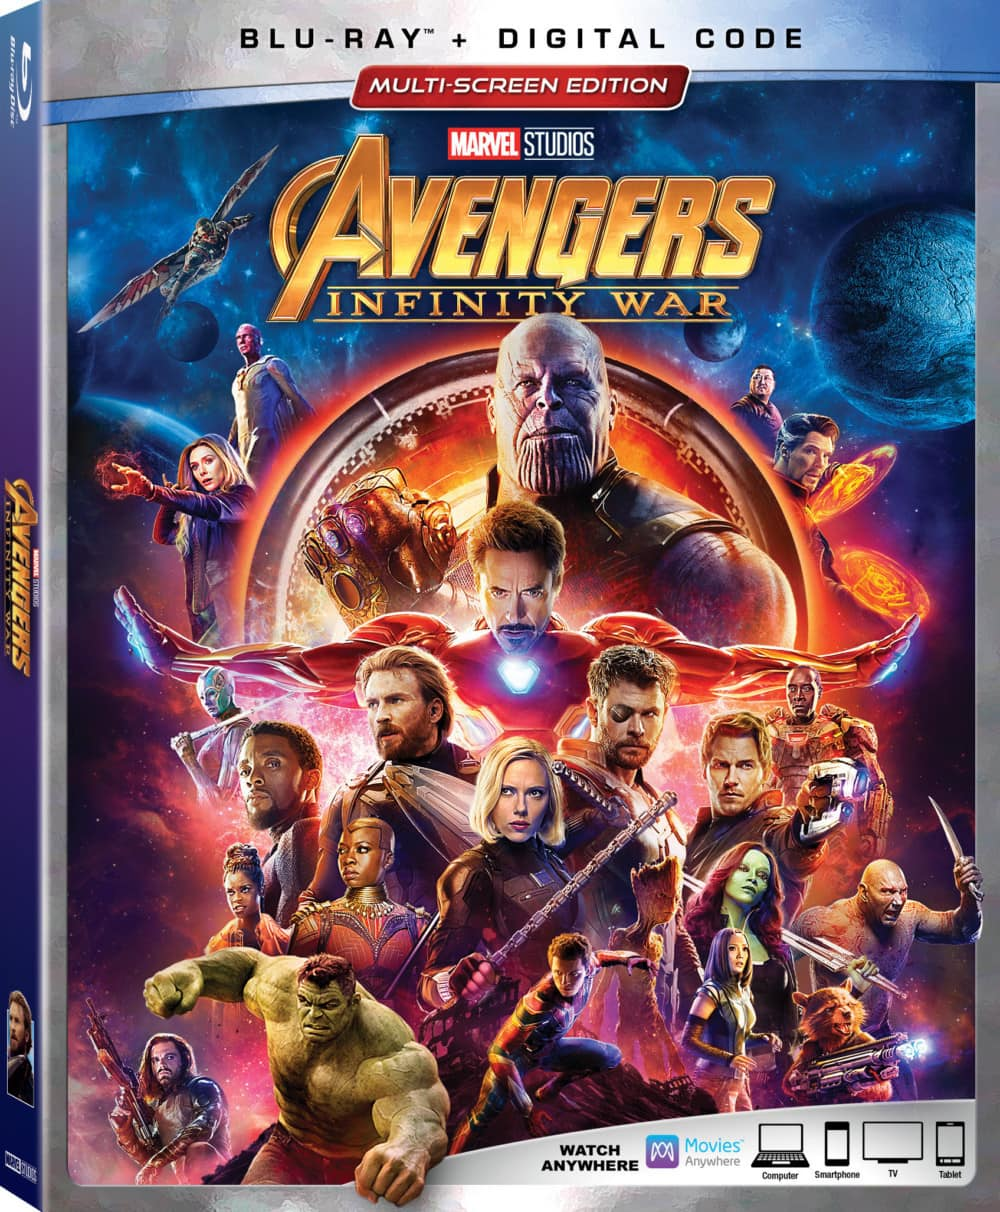 Avengers Infinity War on Blu-Ray August 14